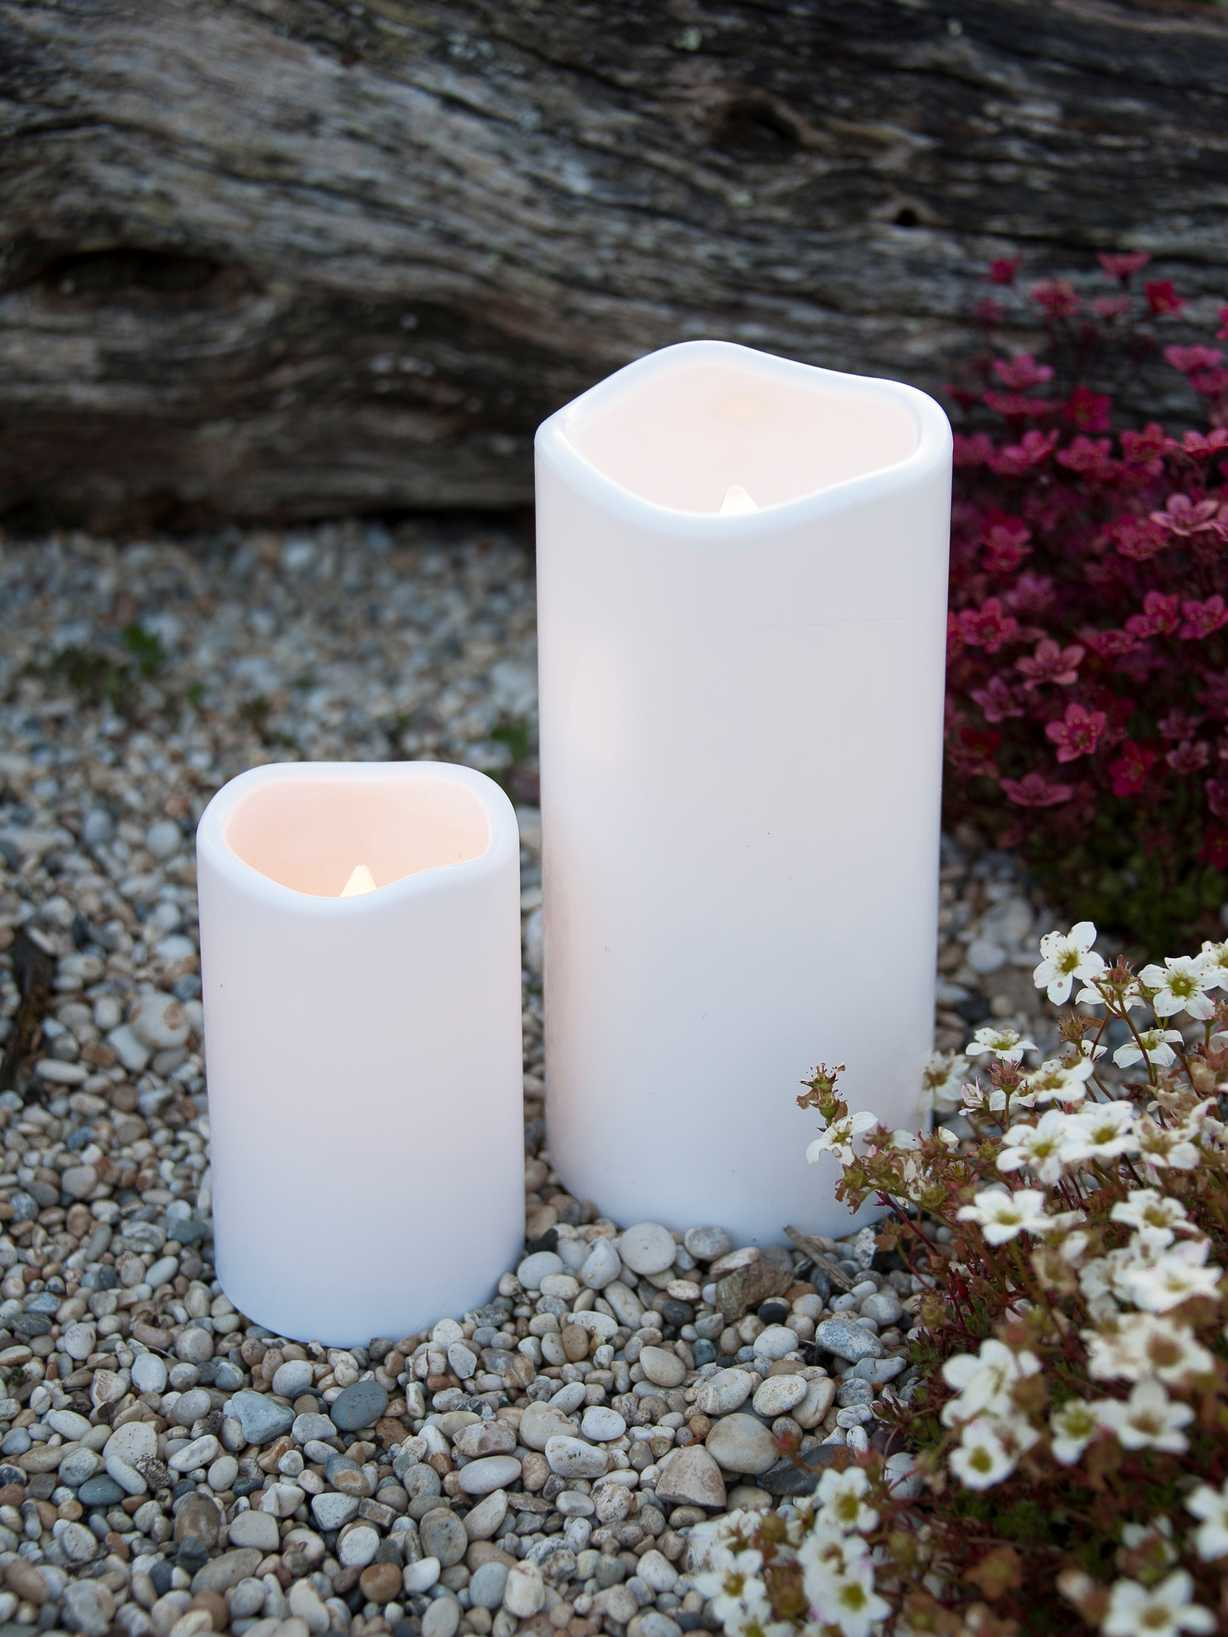 Led Candles Uk Led Pillar Candles Outdoor Led Candles Uk